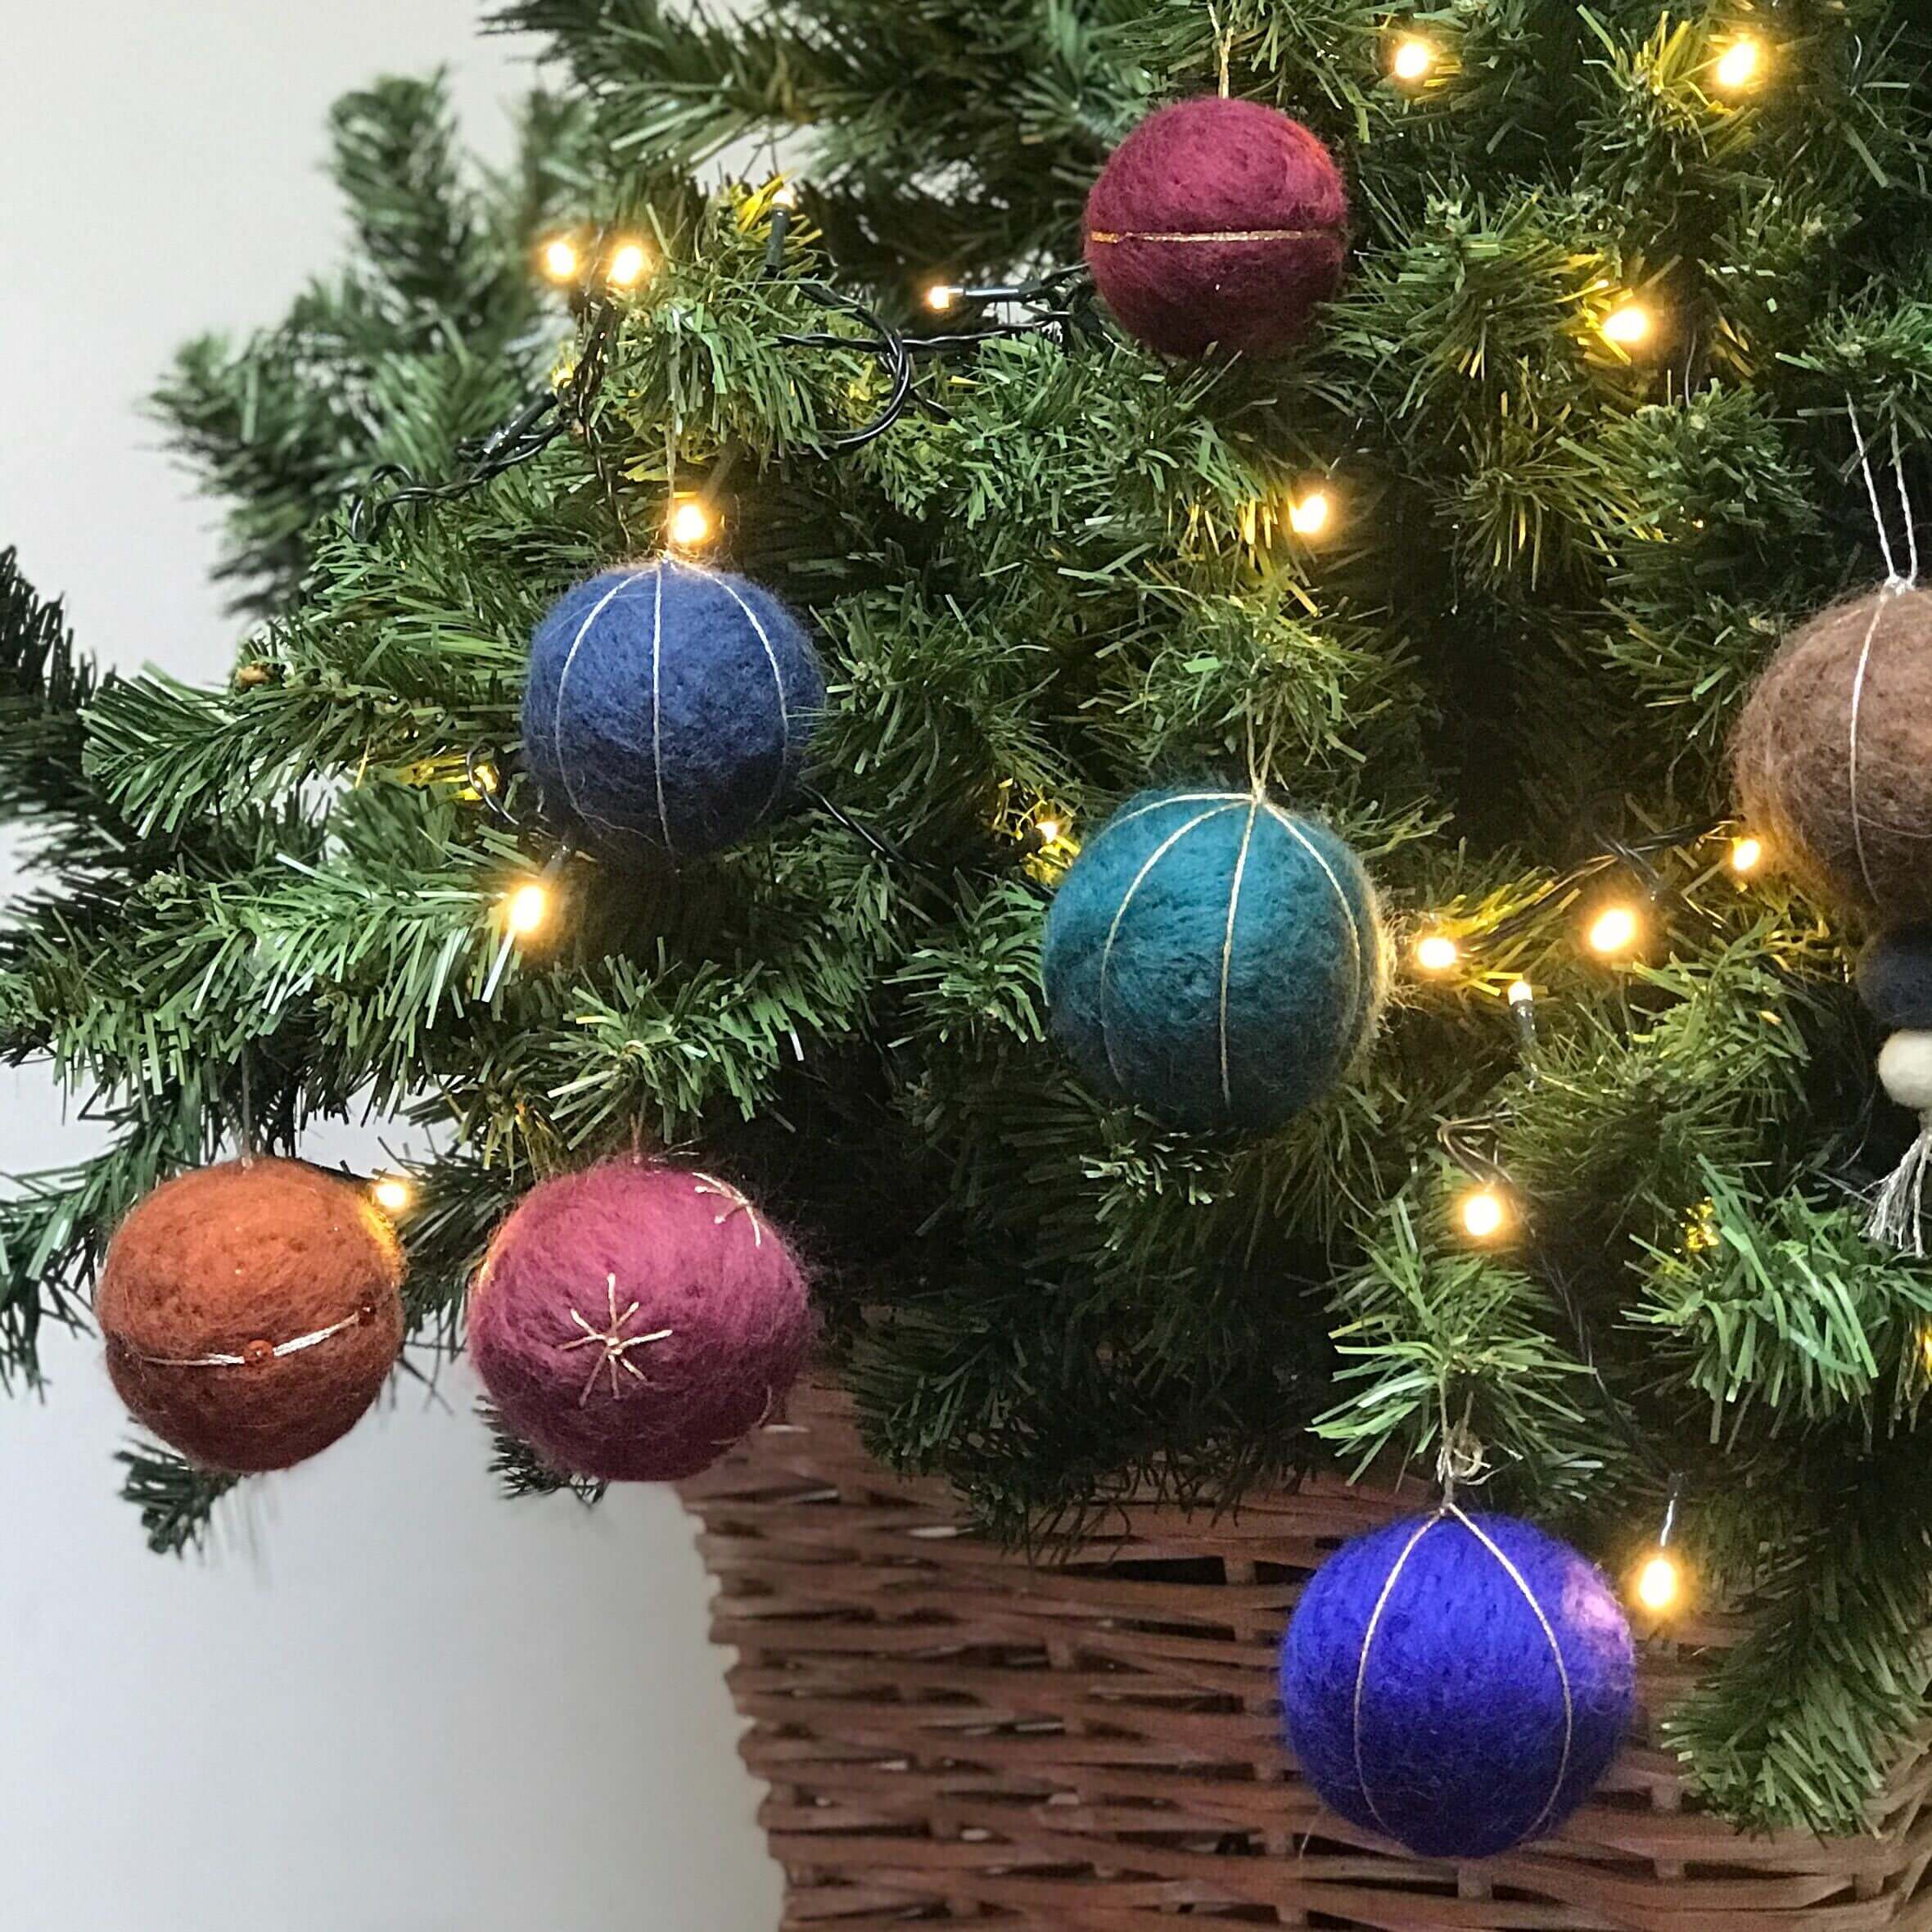 Felted Christmas Baubles in Tree